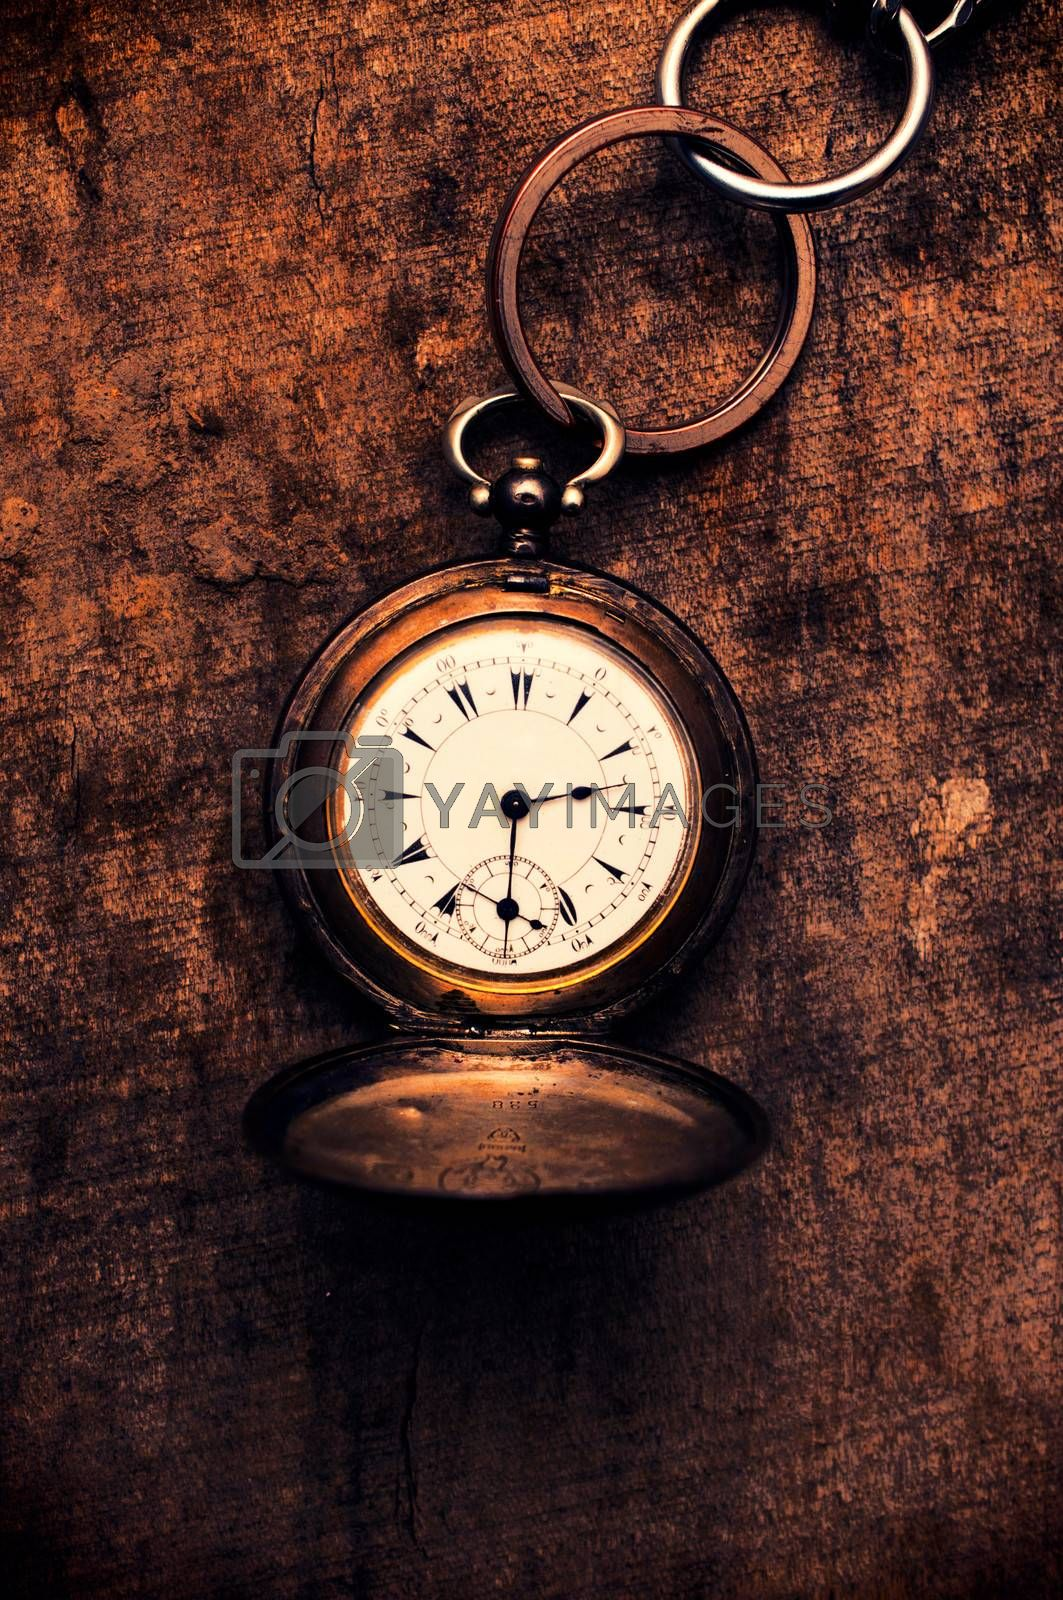 Old pocket watch on the wooden background from above